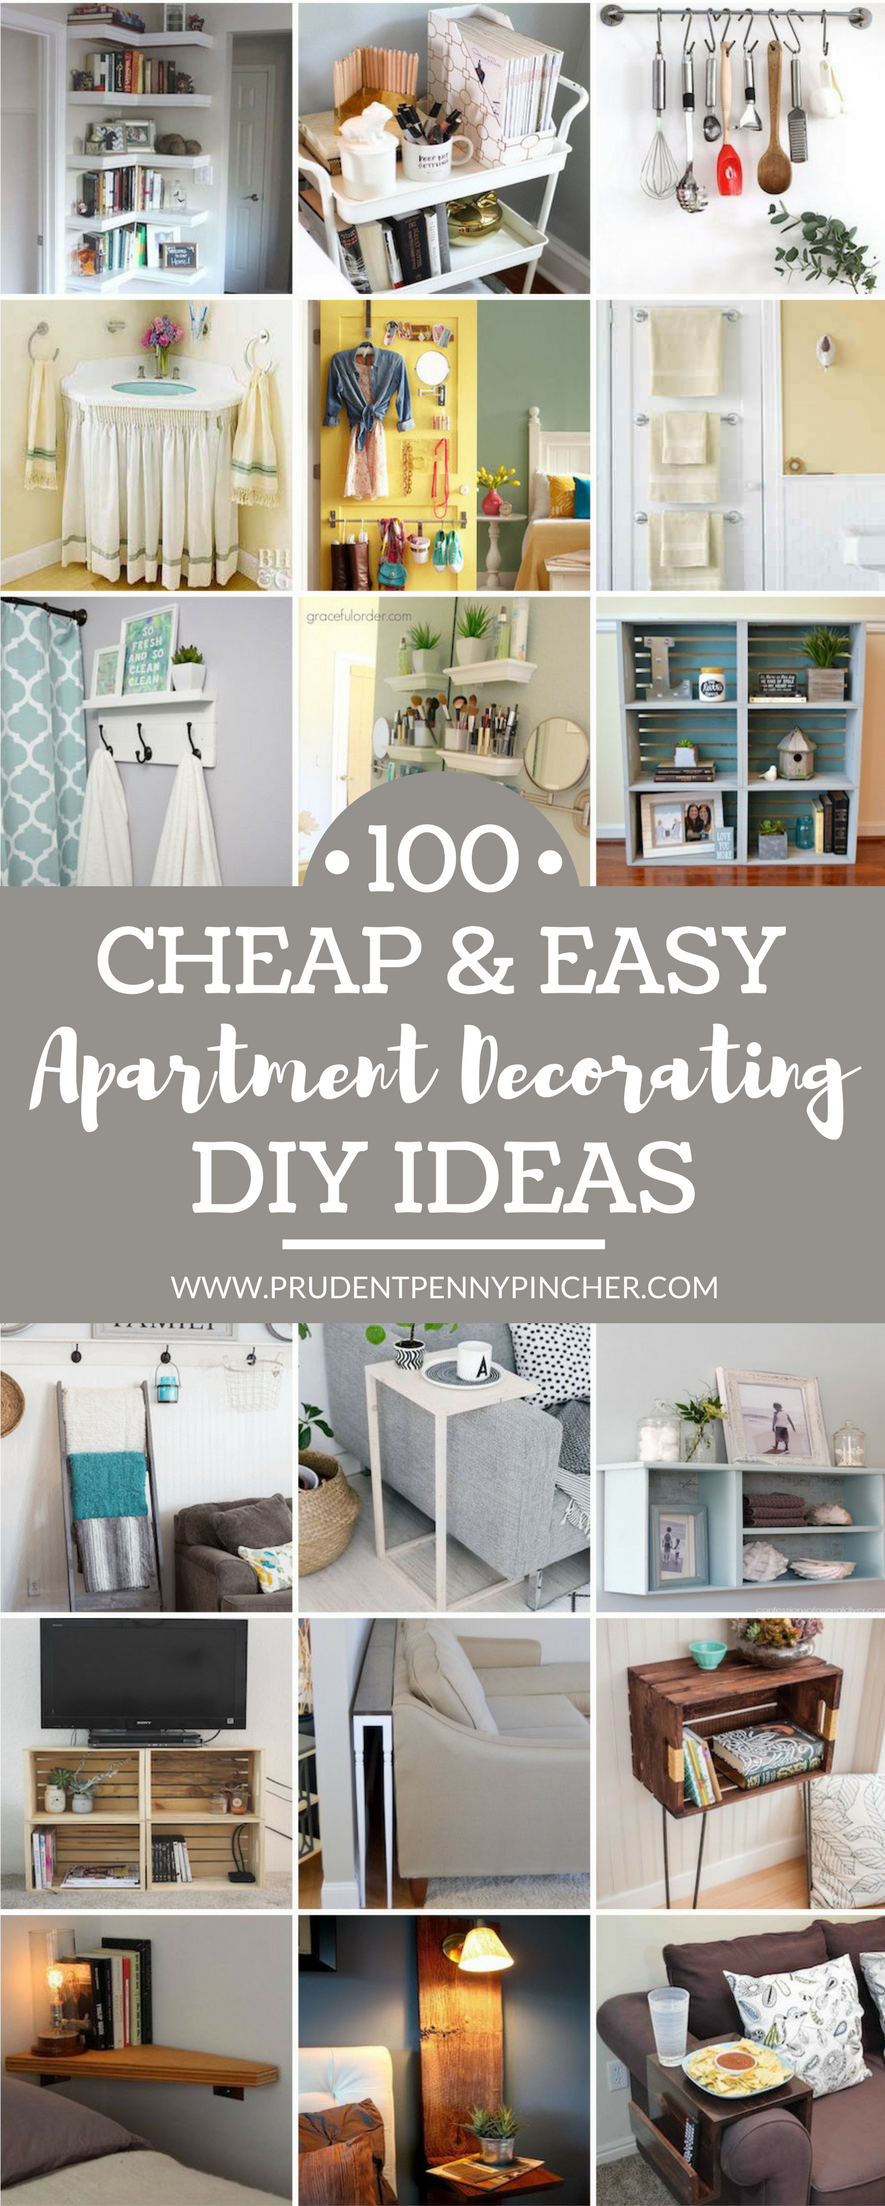 100 Cheap and Easy DIY Apartment Decorating Ideas - Prudent Penny ...